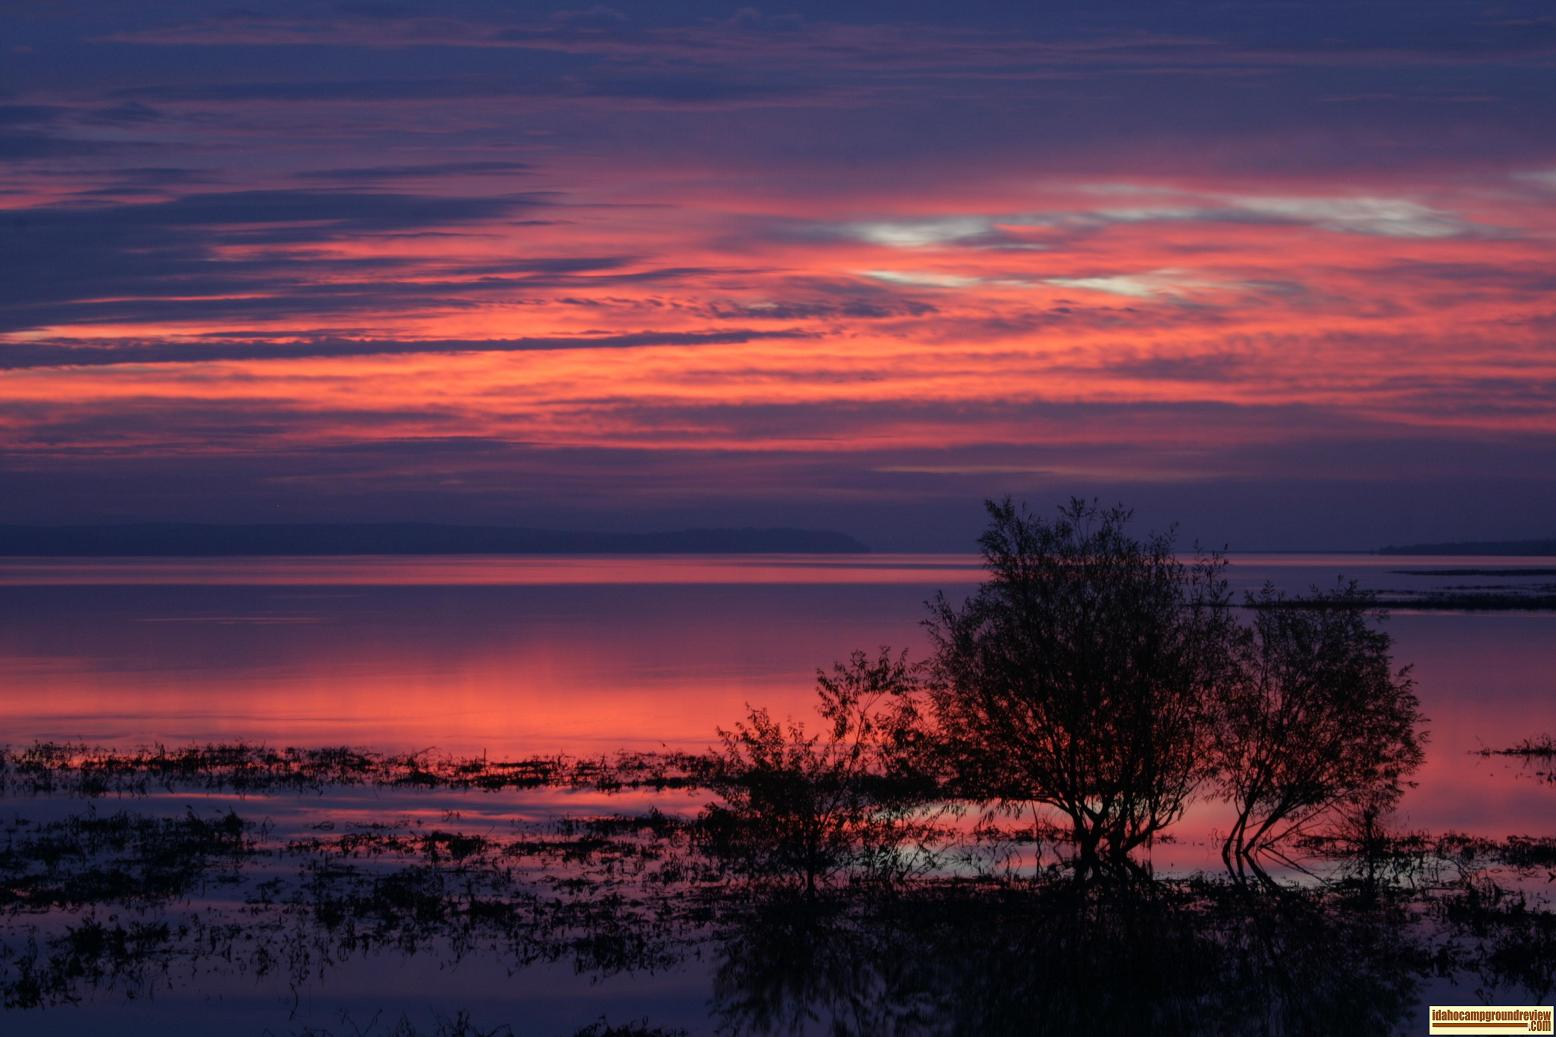 November sunrise over Lake Lowell